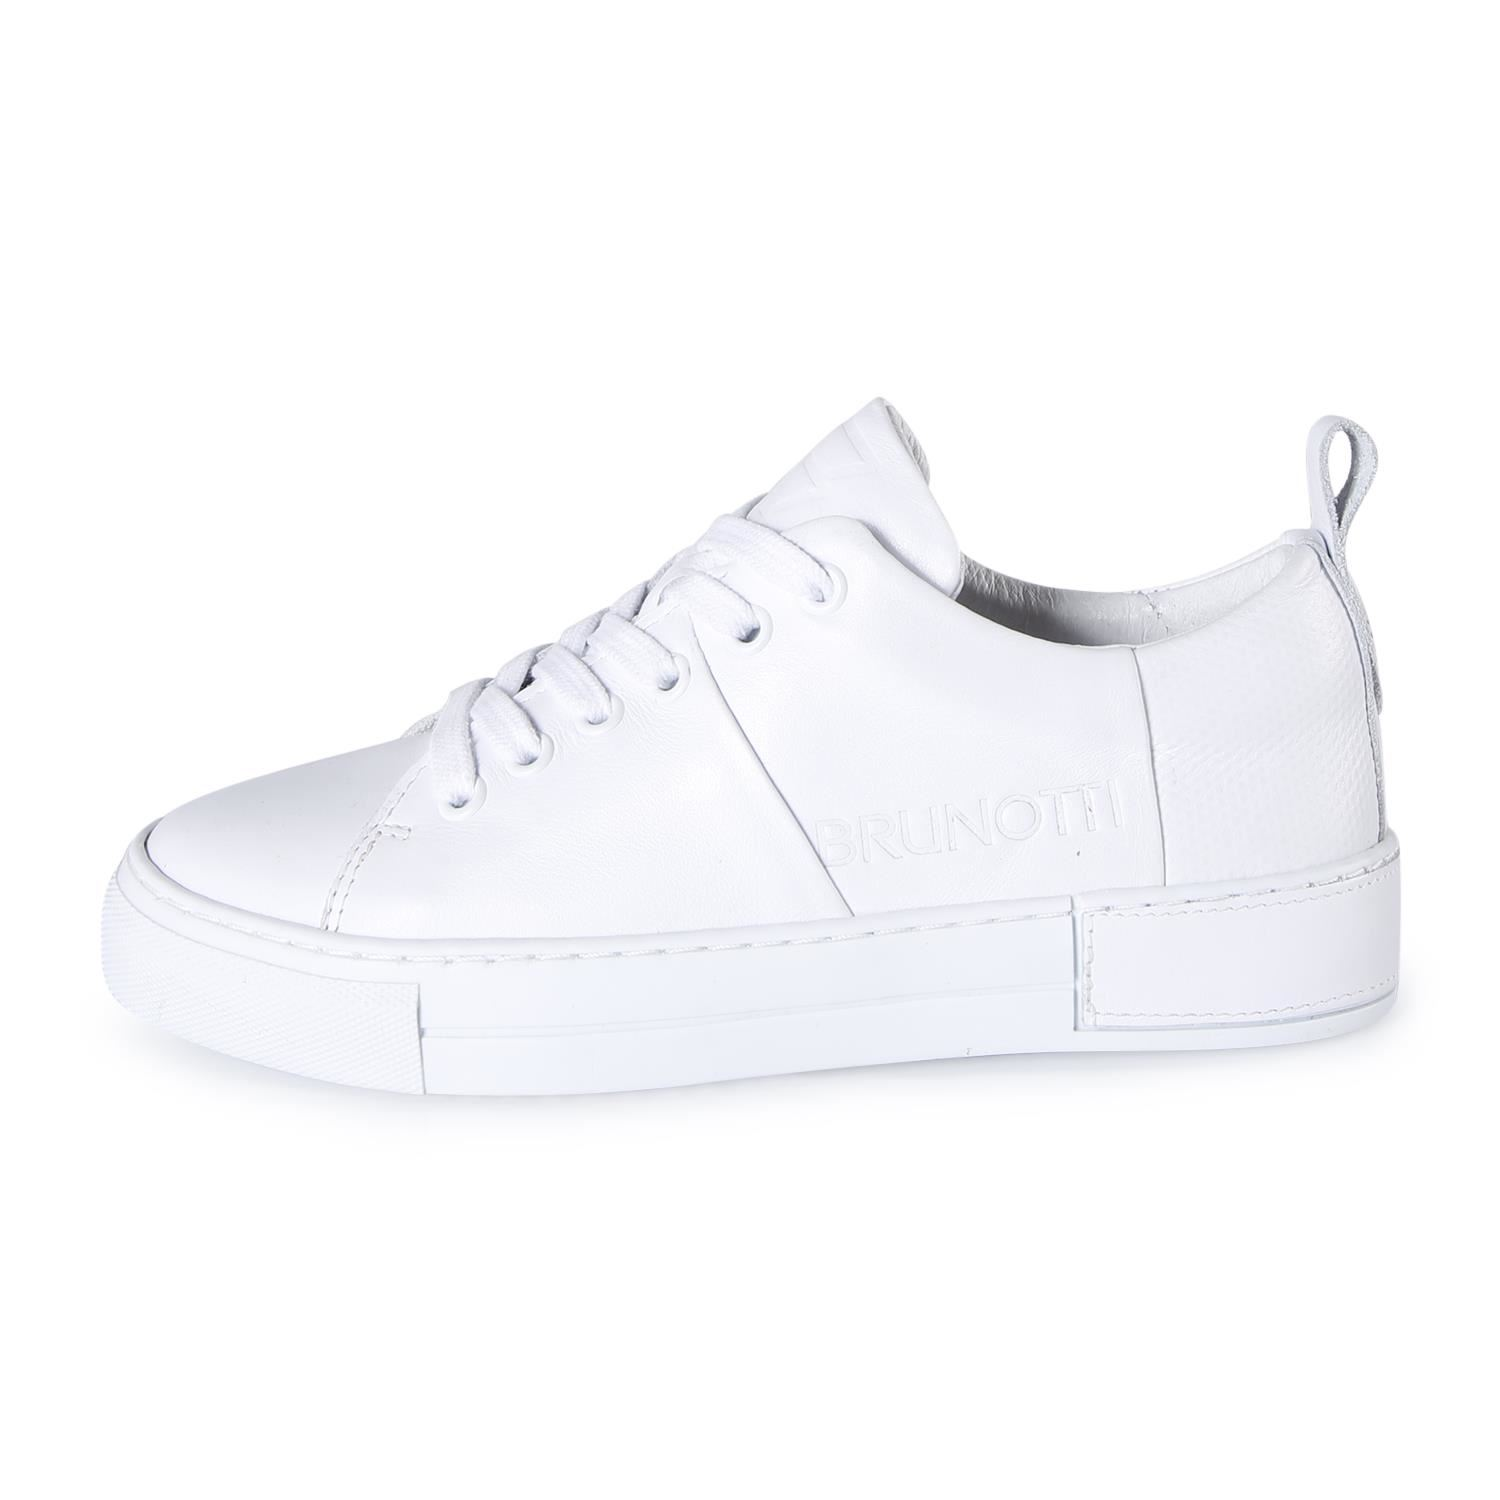 Brunotti Haleiwa  (white) - women shoes - Brunotti online shop